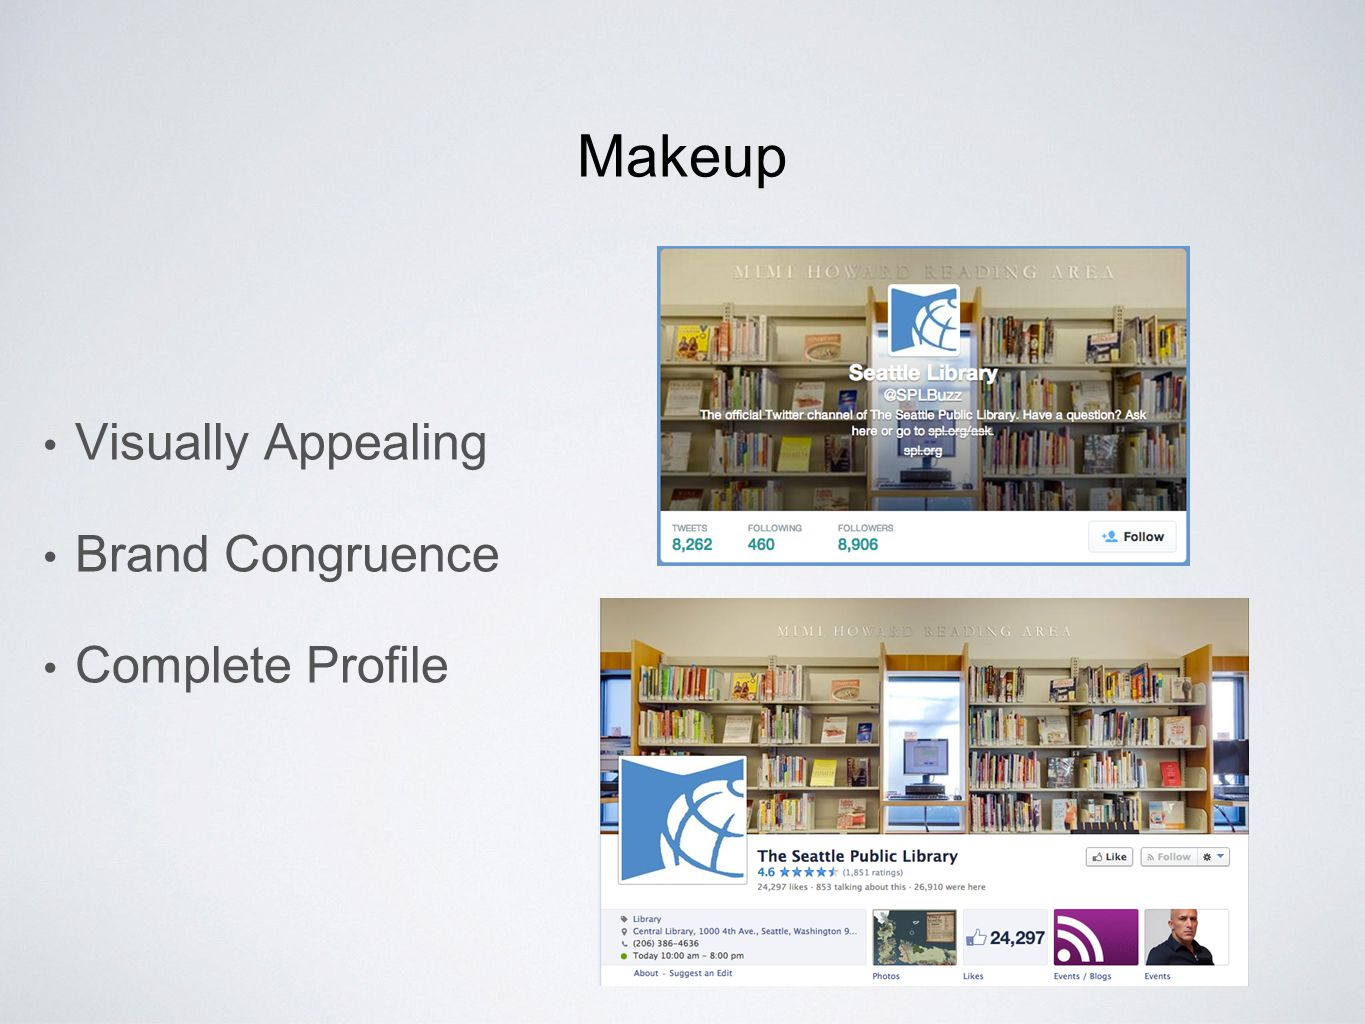 Makeup Visually Appealing Brand Congruence Complete Profile